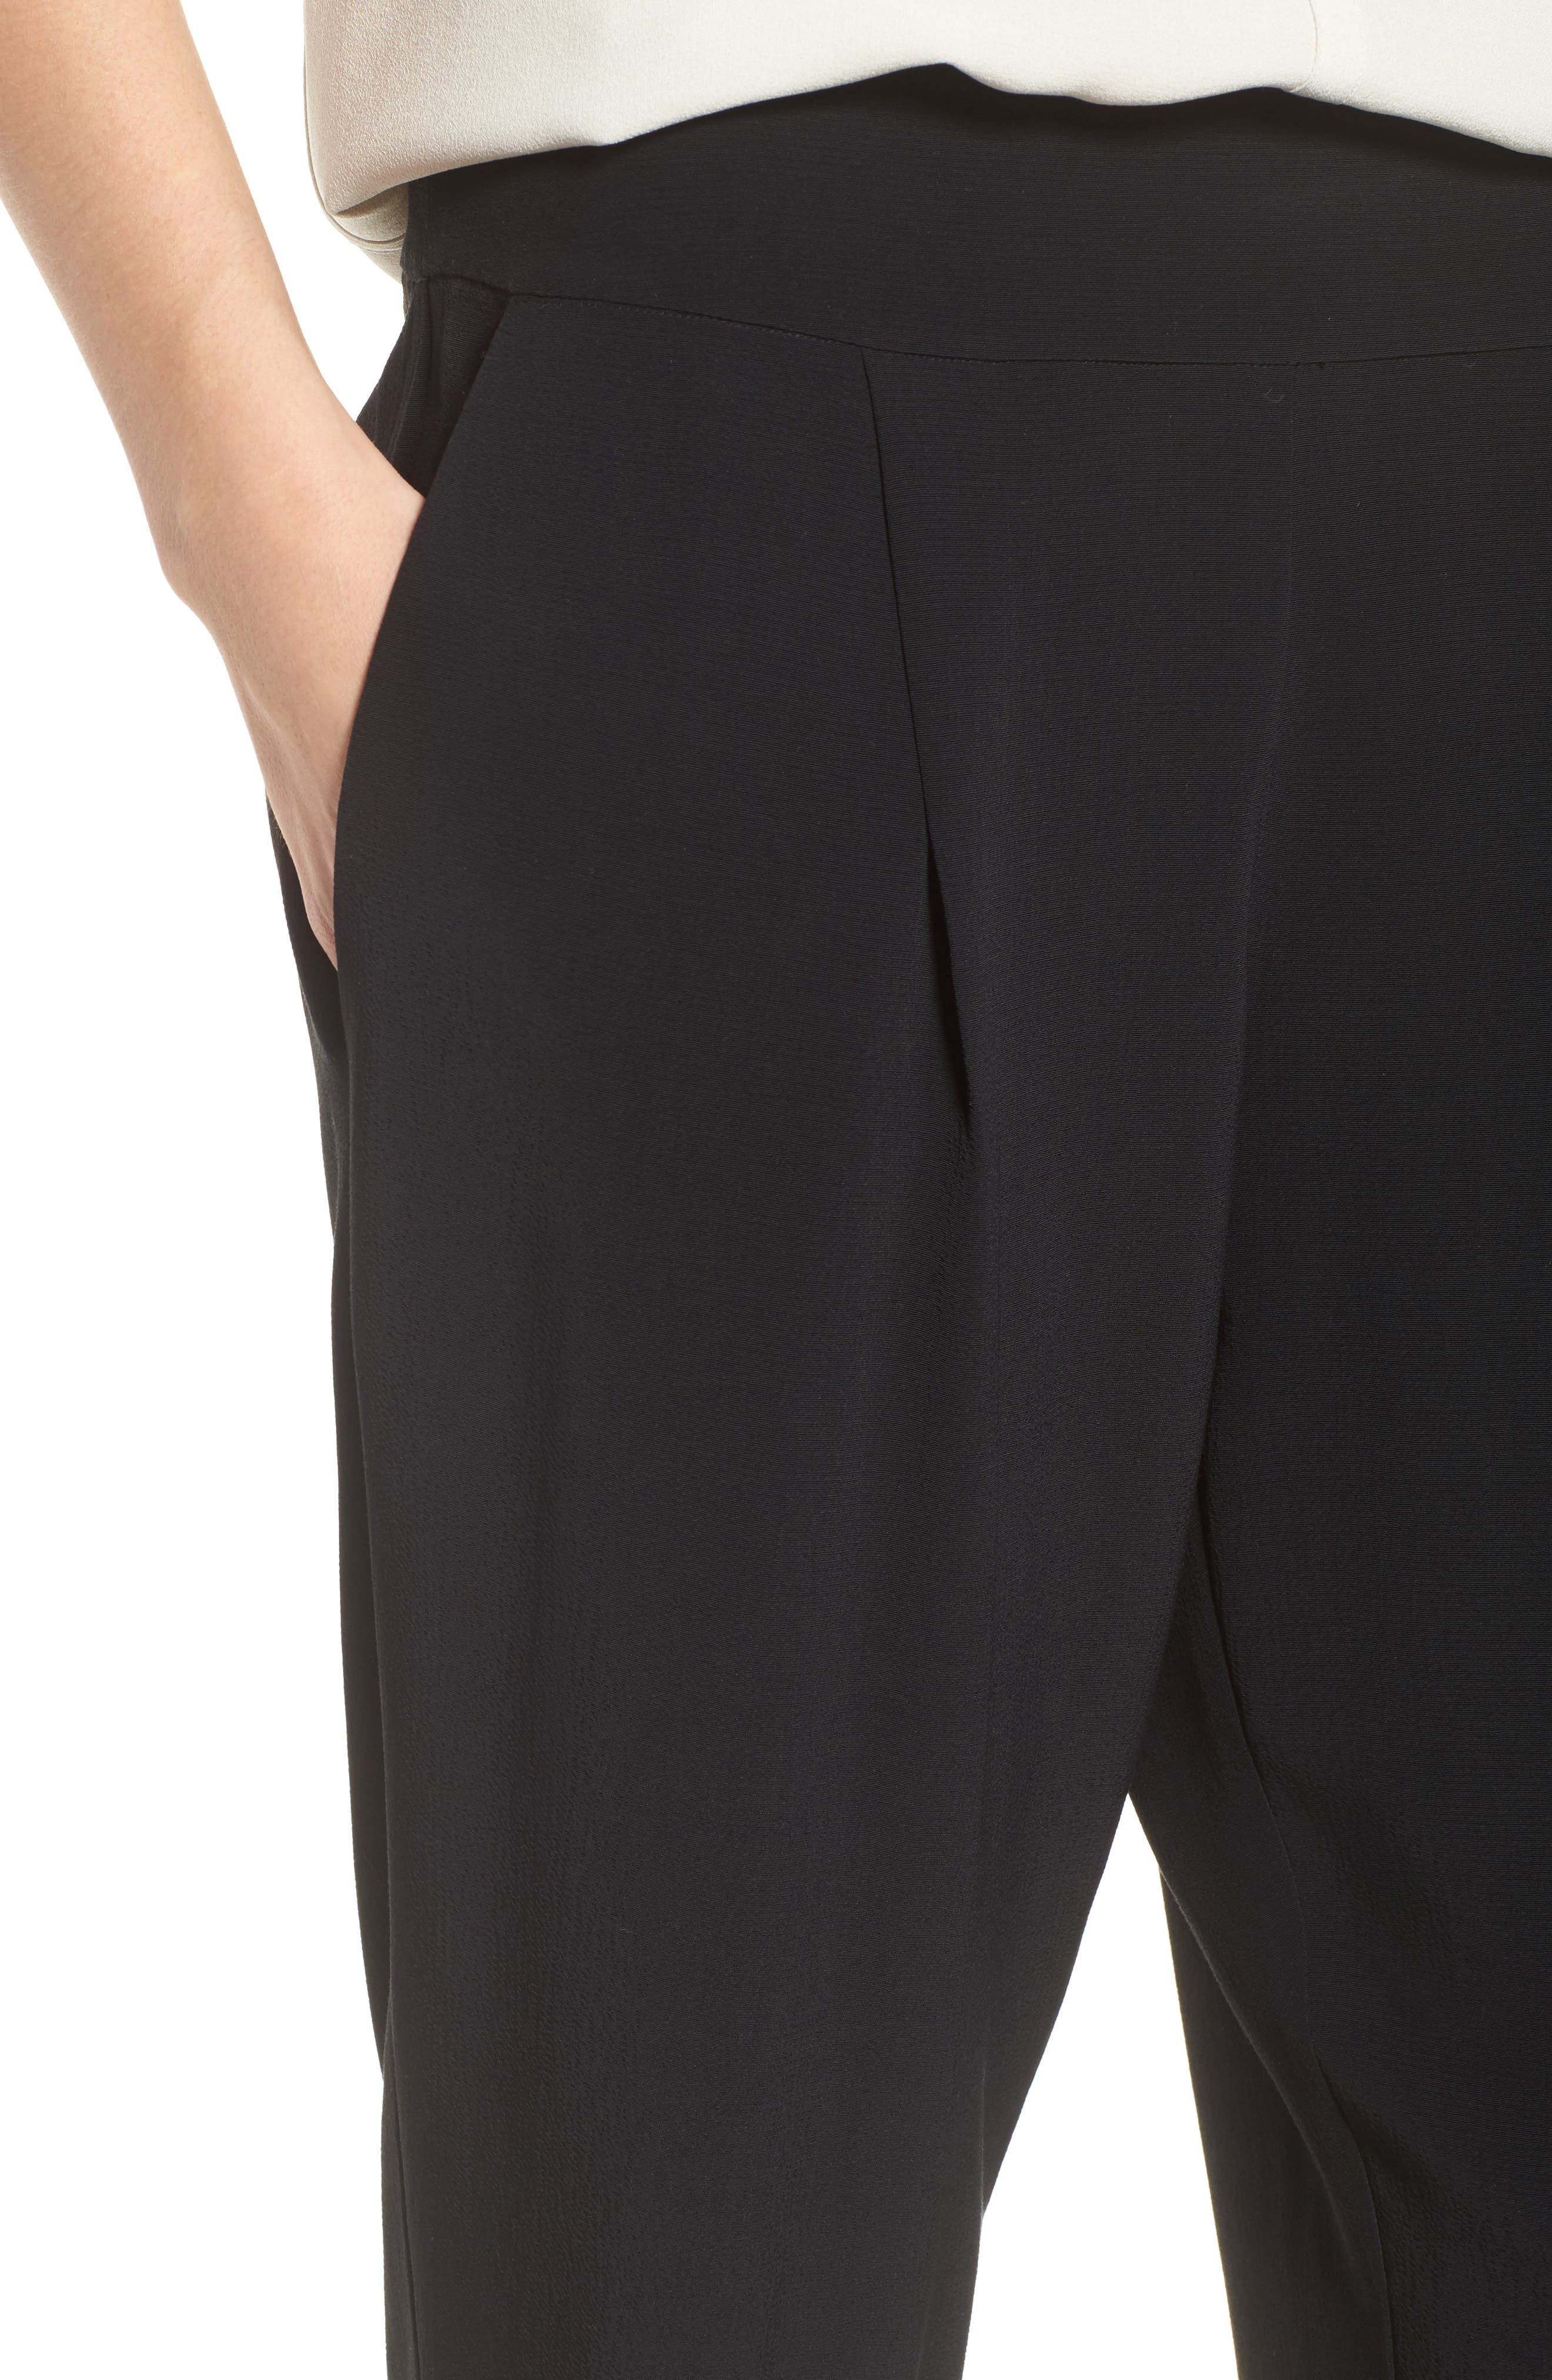 Slouchy Tencel<sup>®</sup> Lyocell Blend Crop Pants,                             Alternate thumbnail 4, color,                             Black